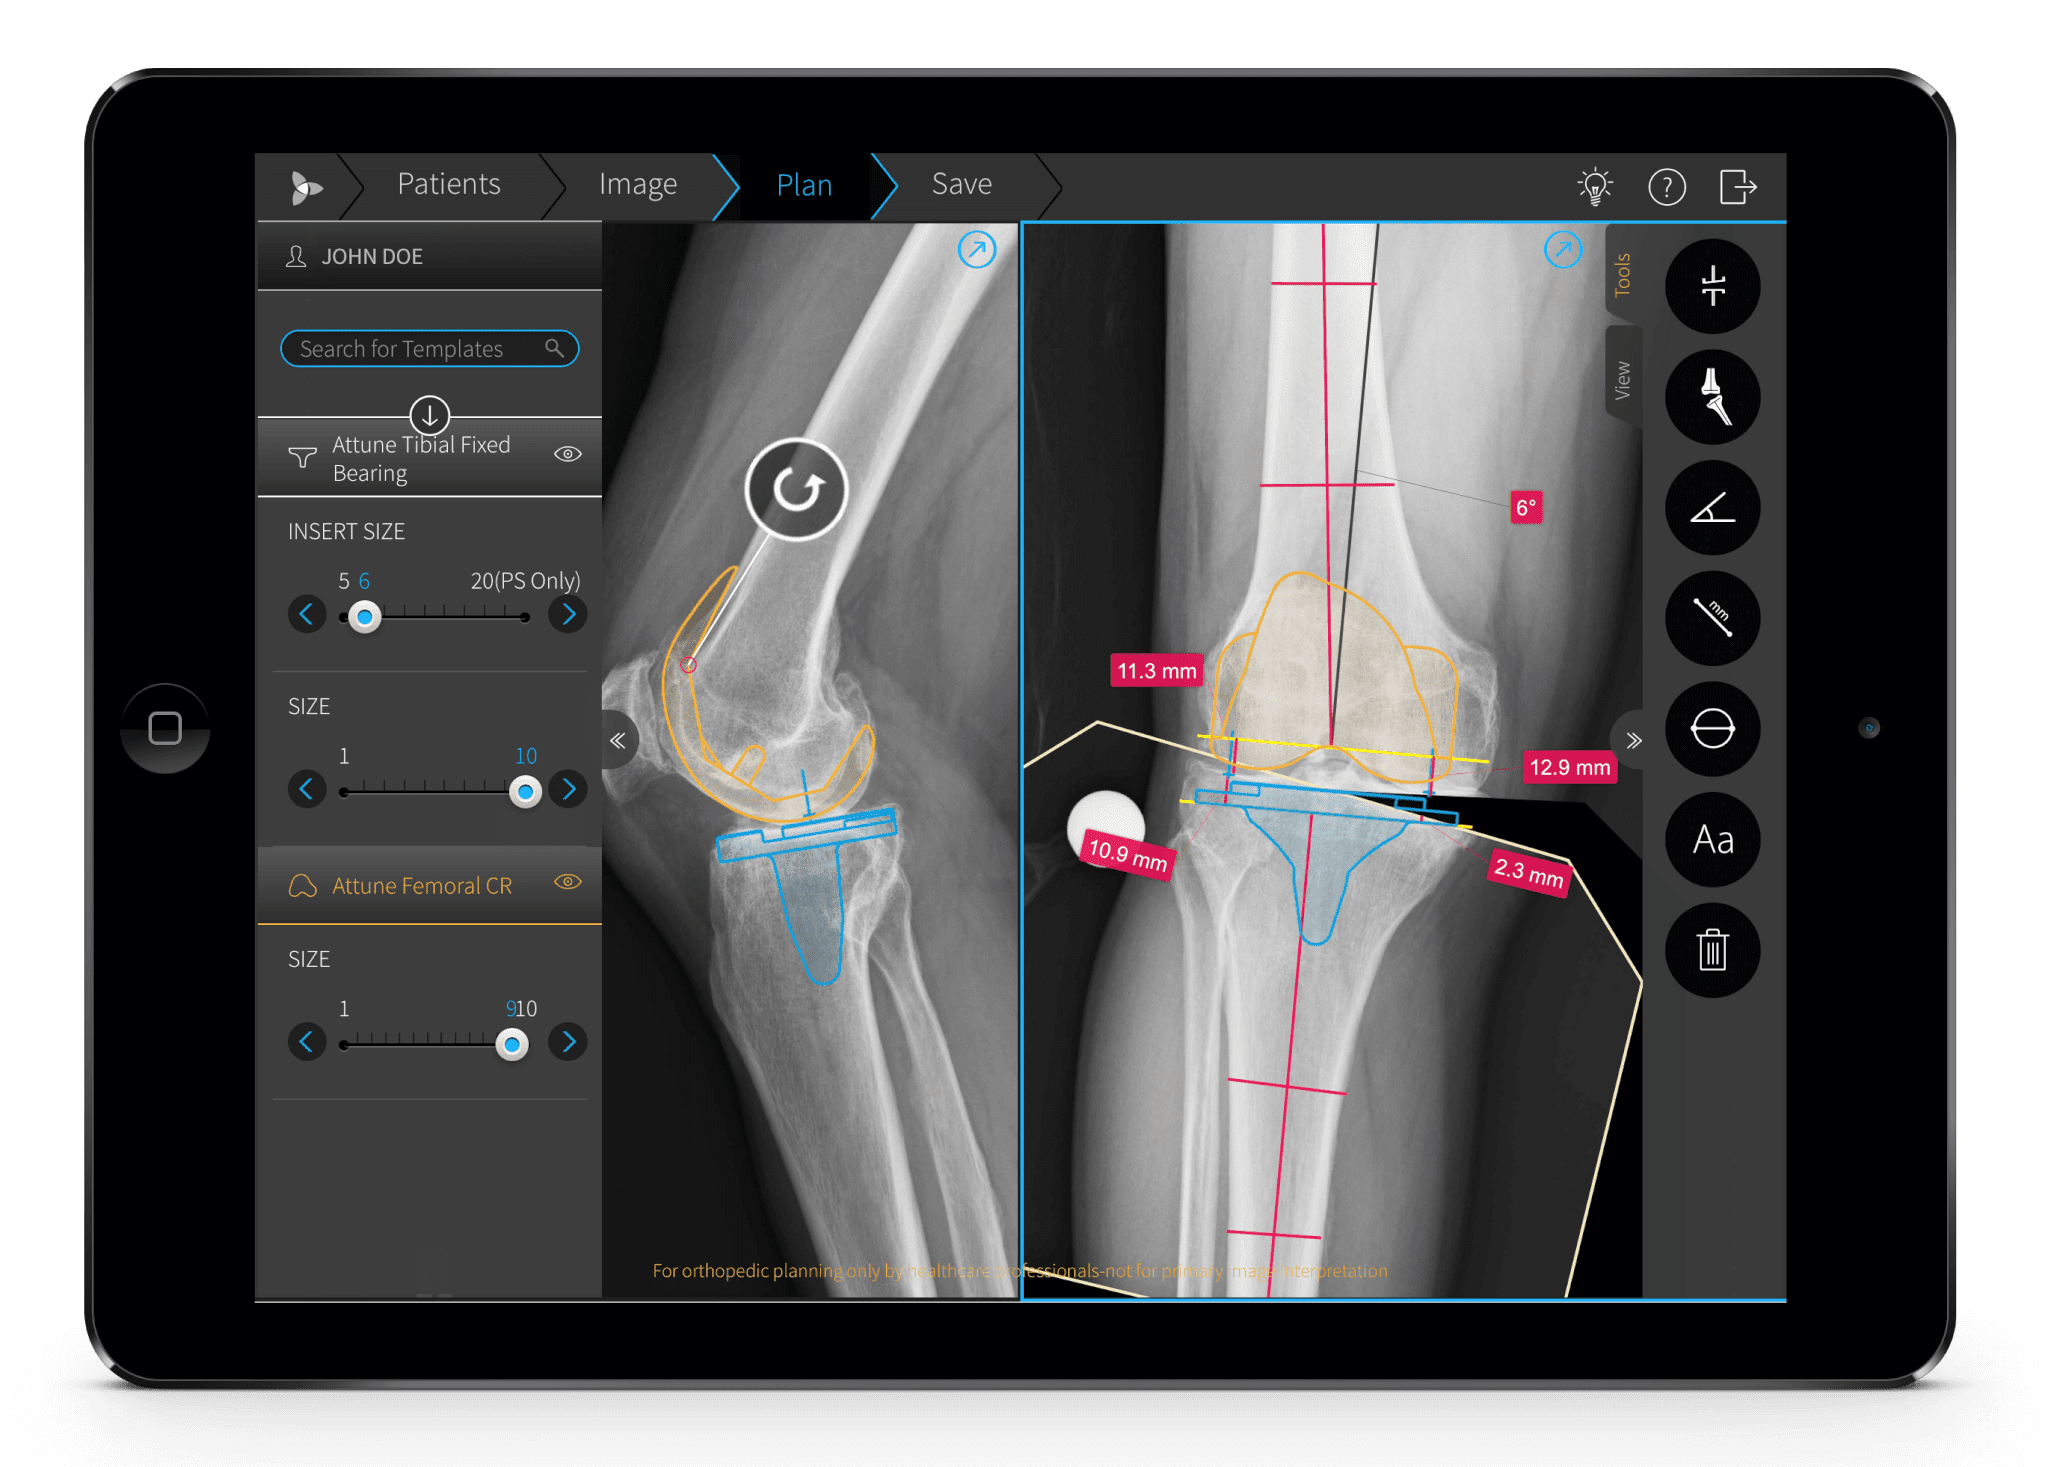 Orthopedic surgery navigation software